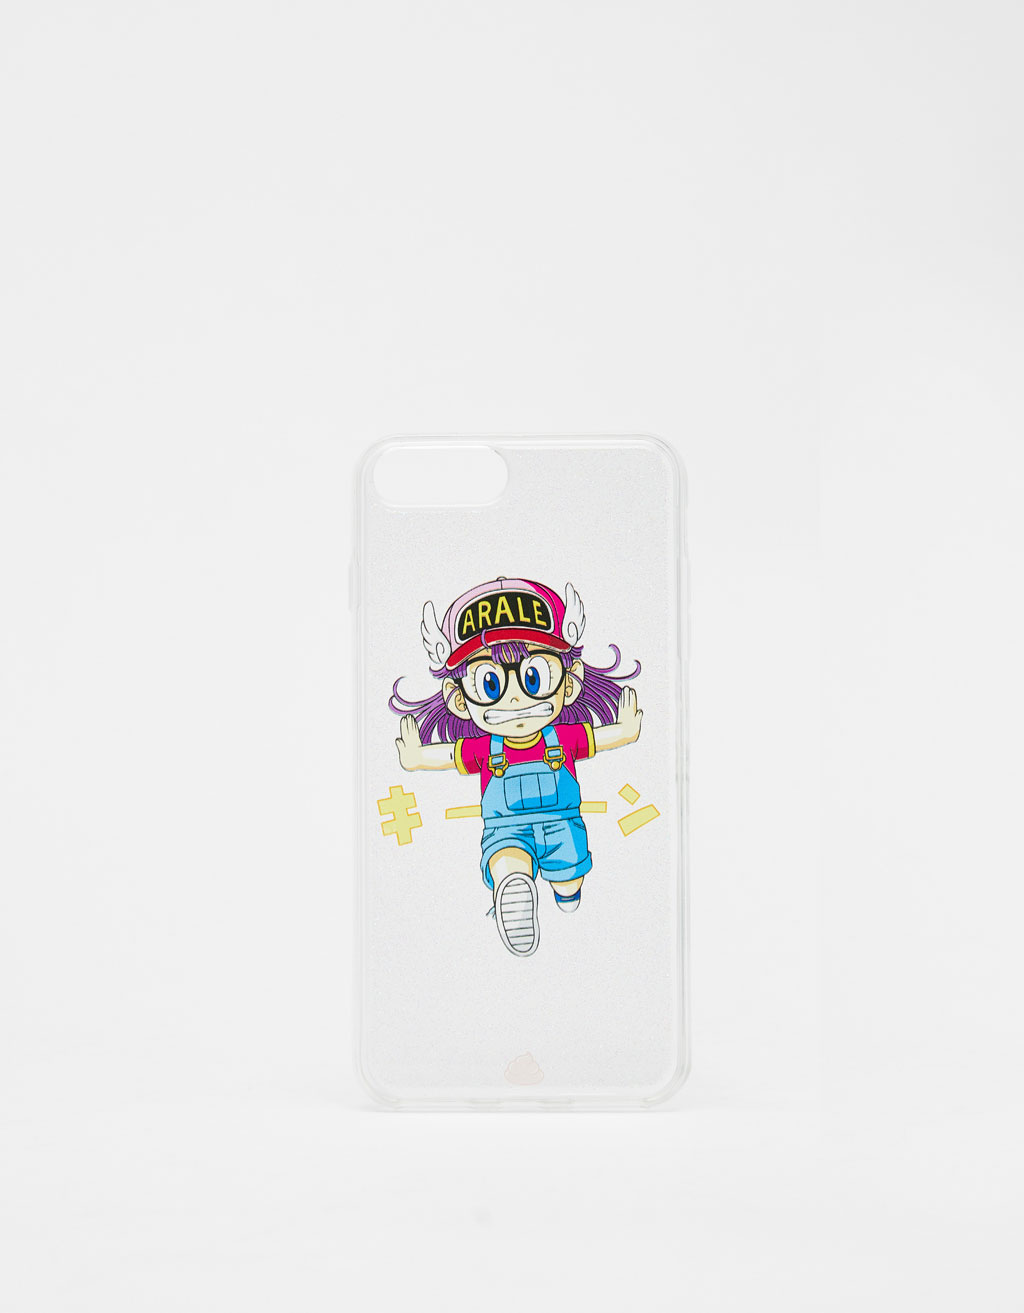 Transparent Arale iPhone 6 Plus/7 Plus/8 Plus case